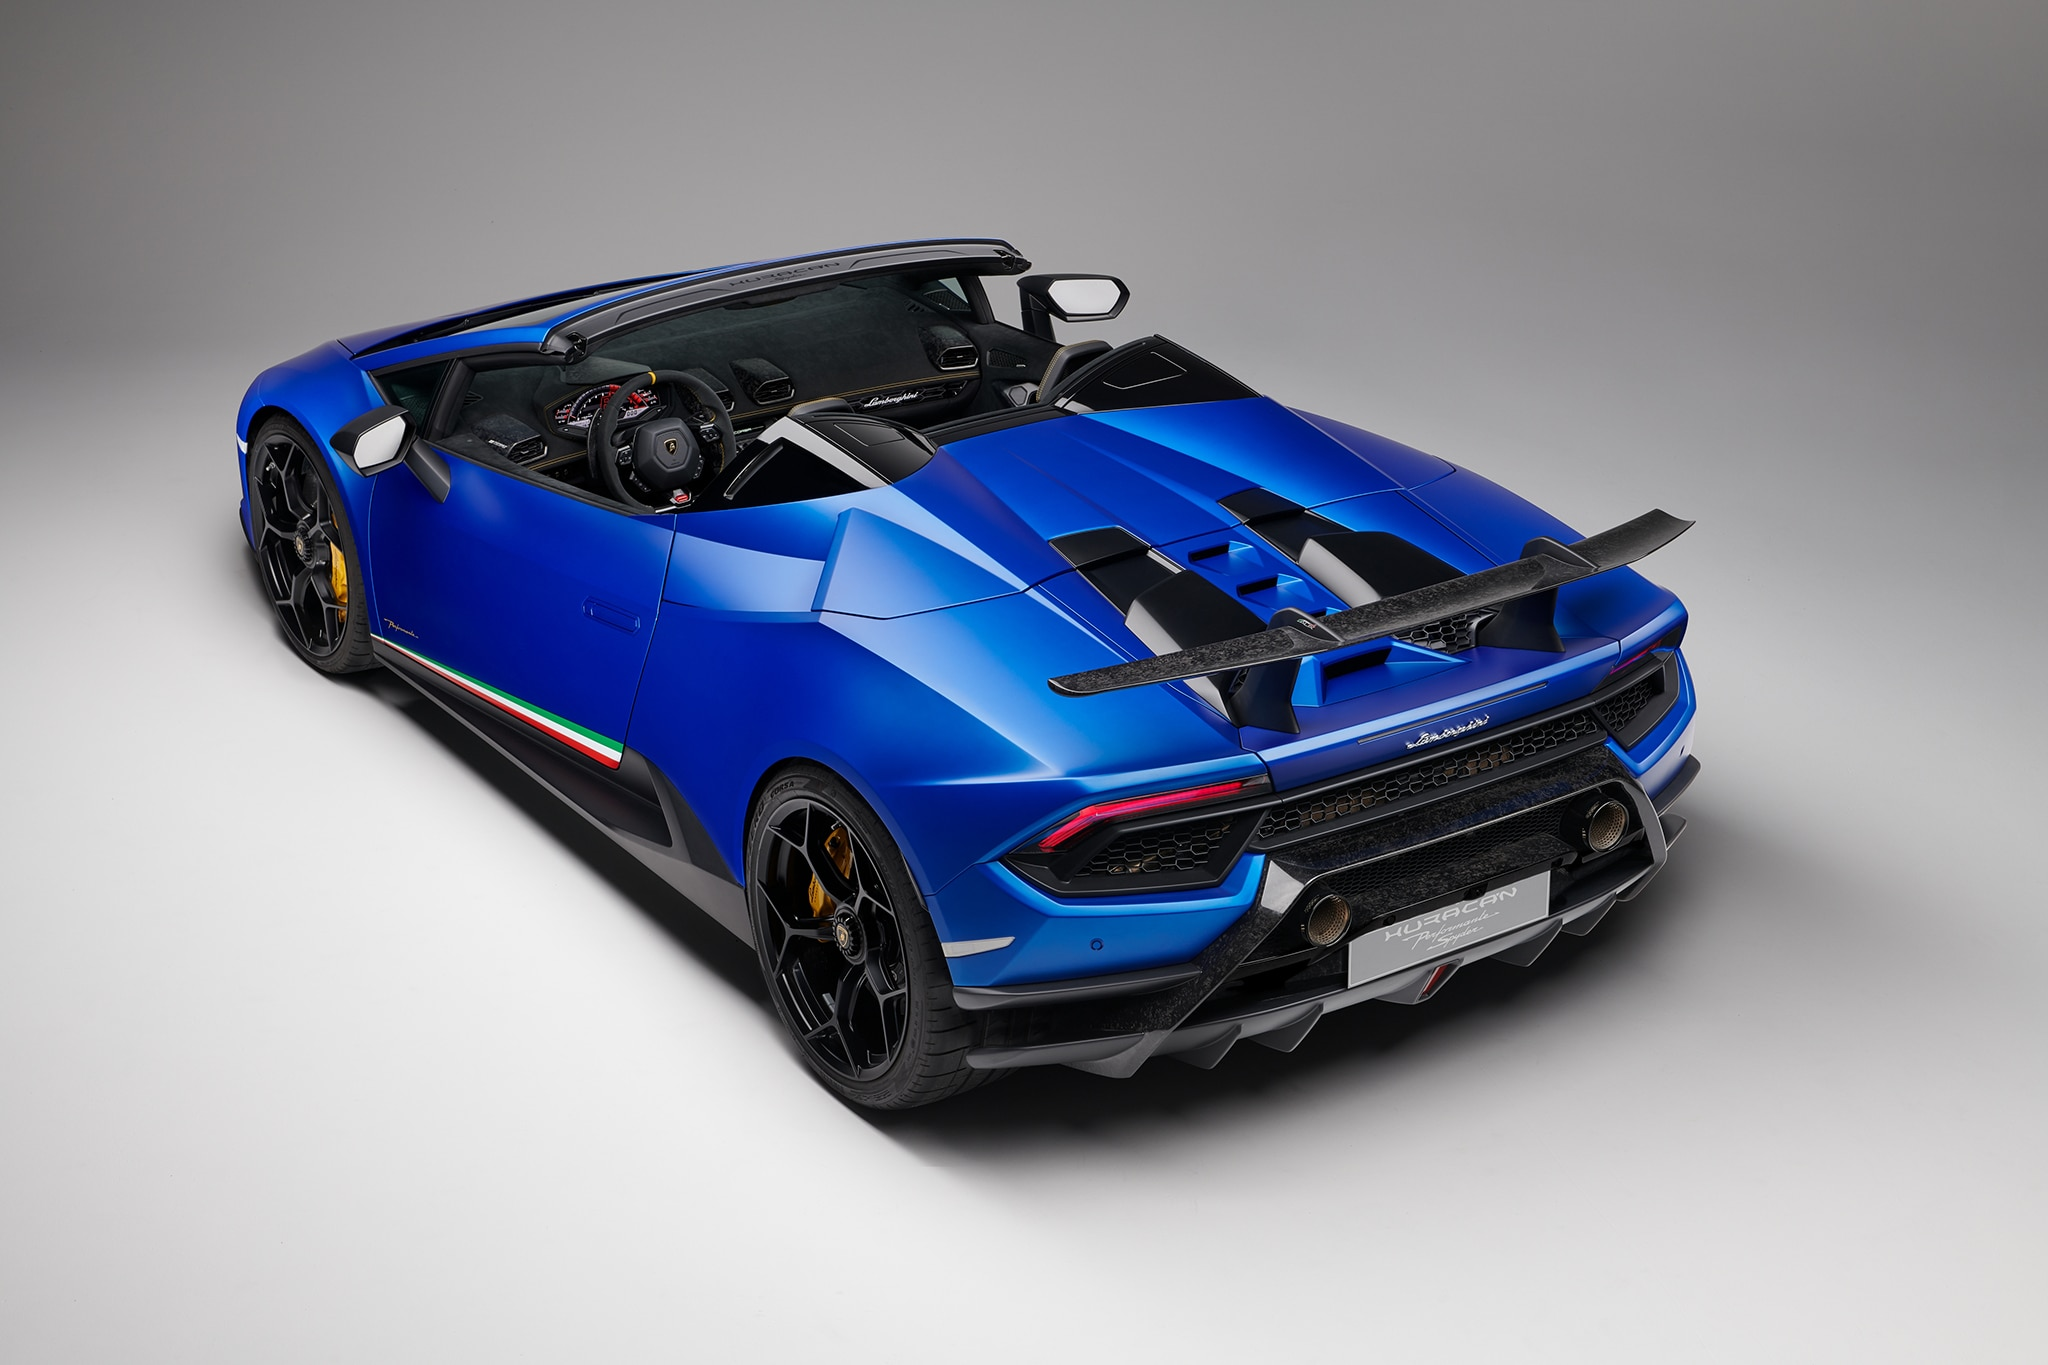 Lamborghini Huracan Performante Spider Review It S Cranked Up To 12